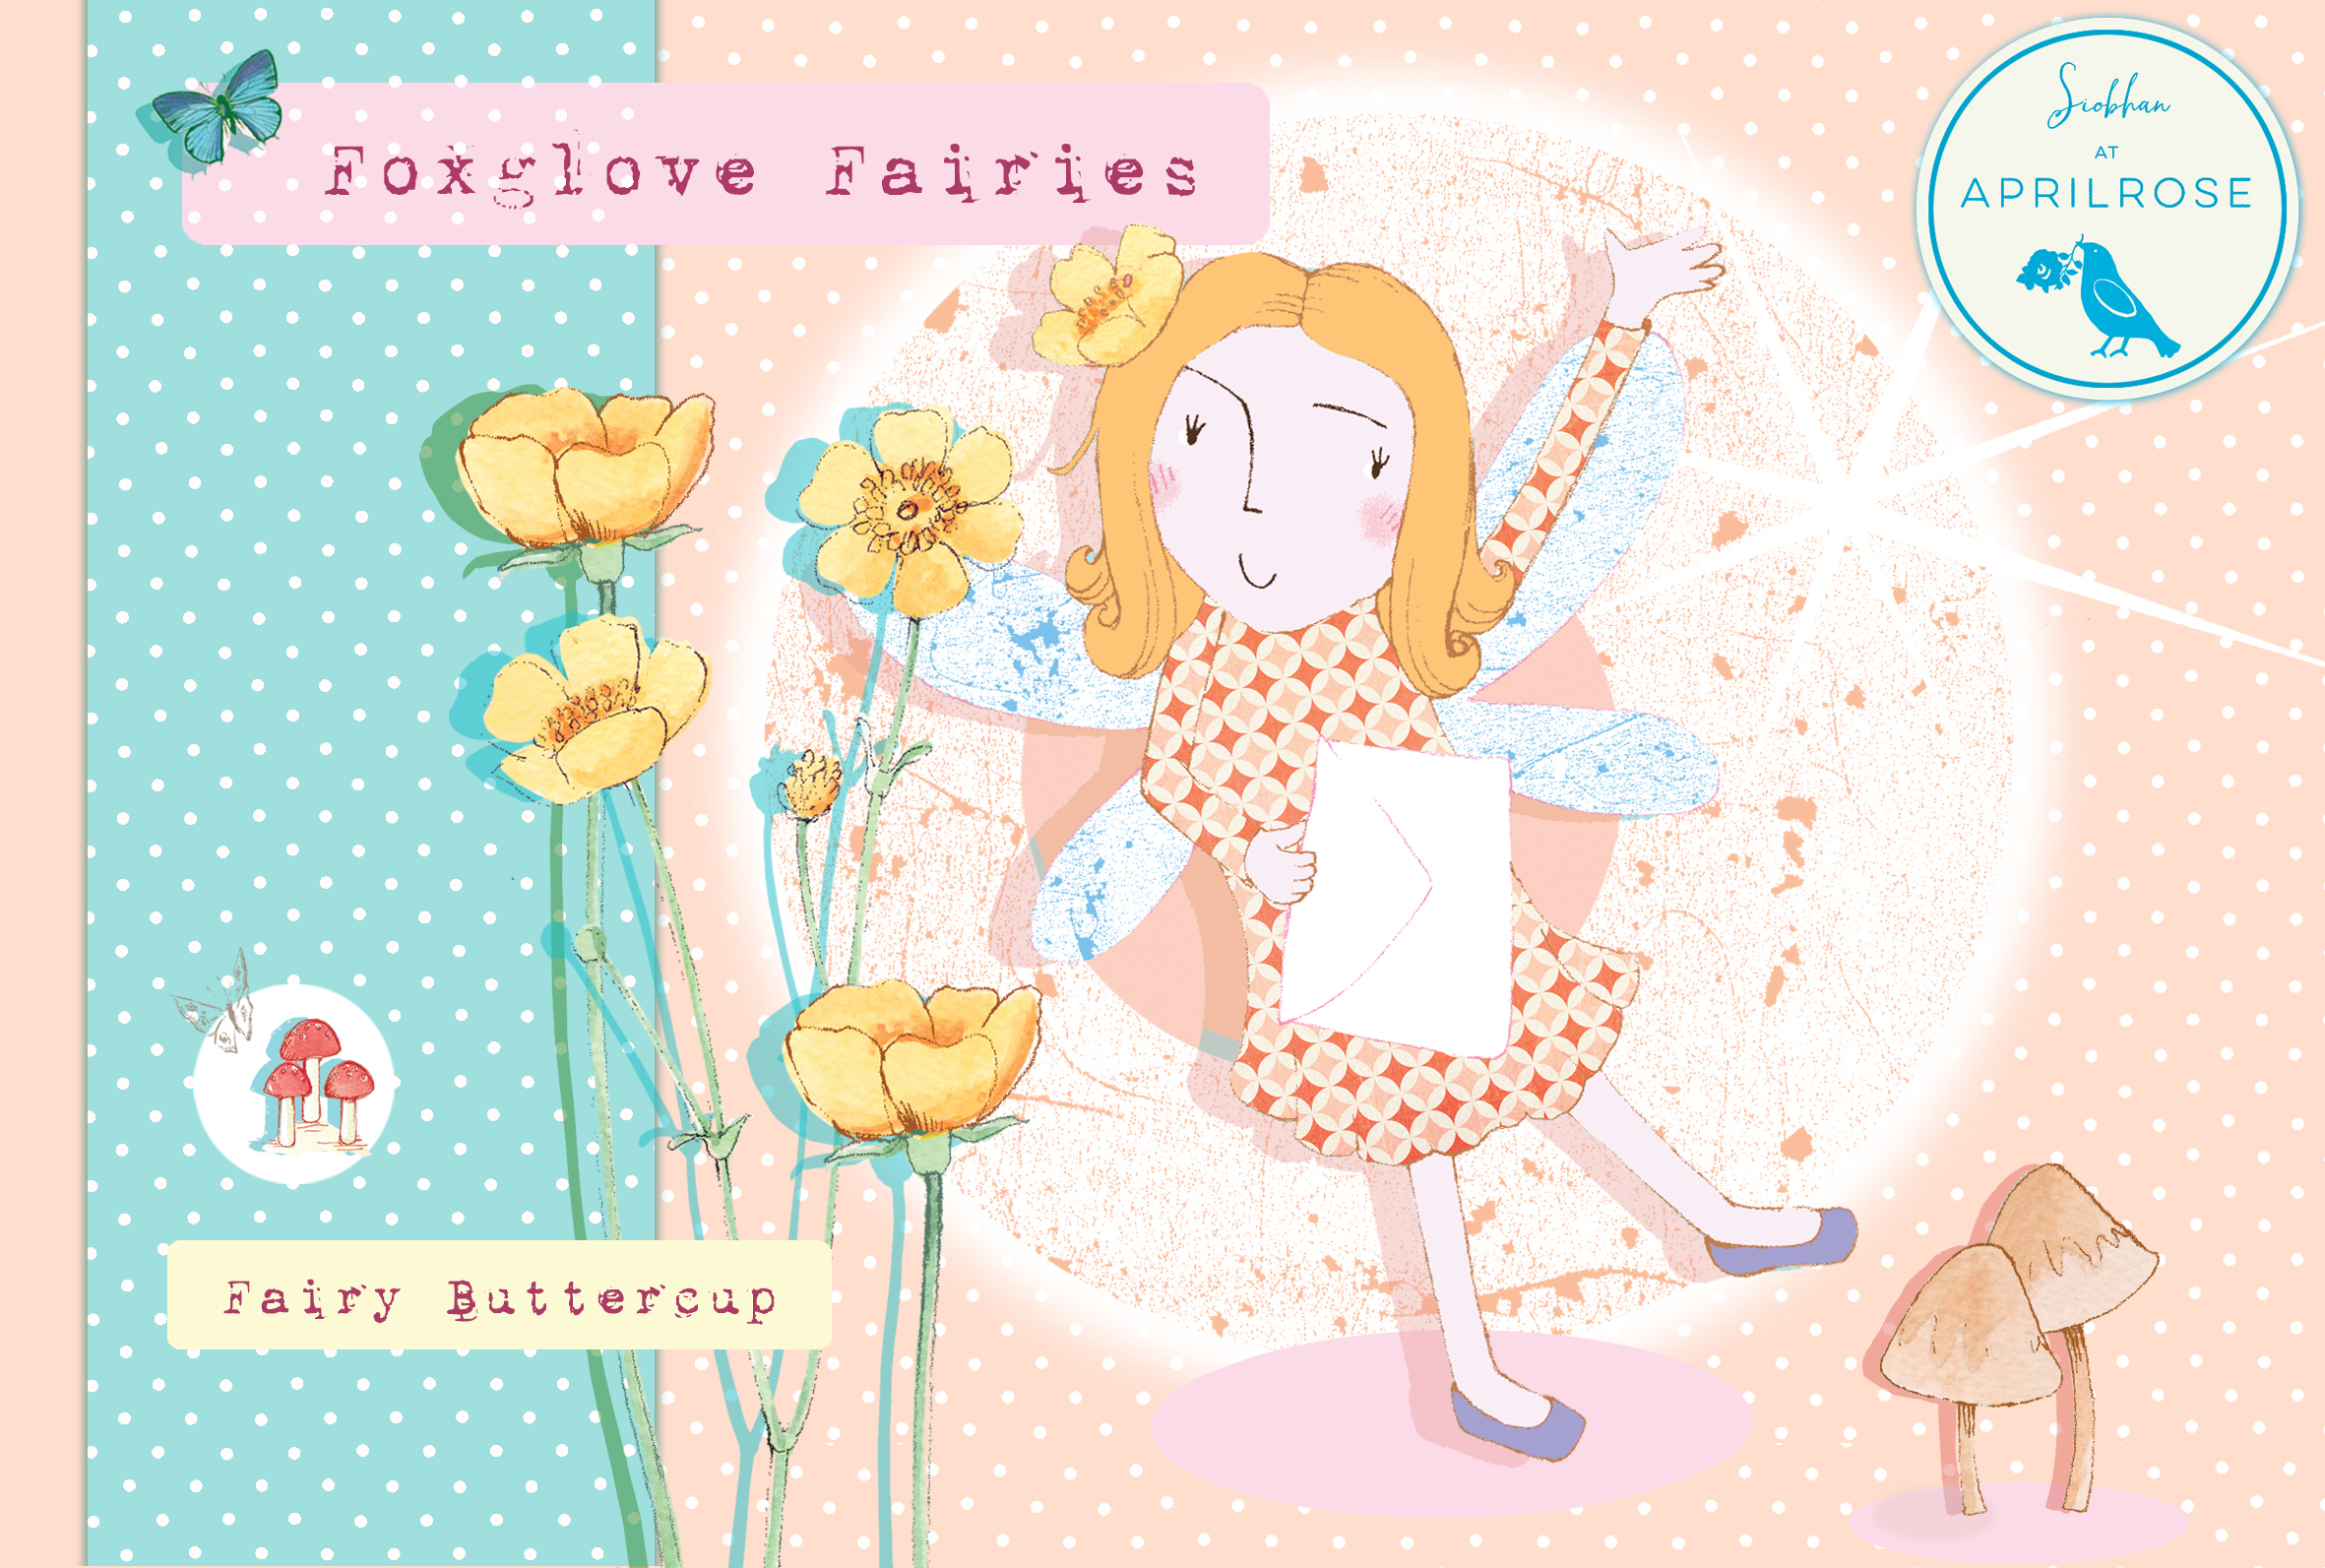 Above: One of the Foxglove Fairies, created by Siobhan Harrison.